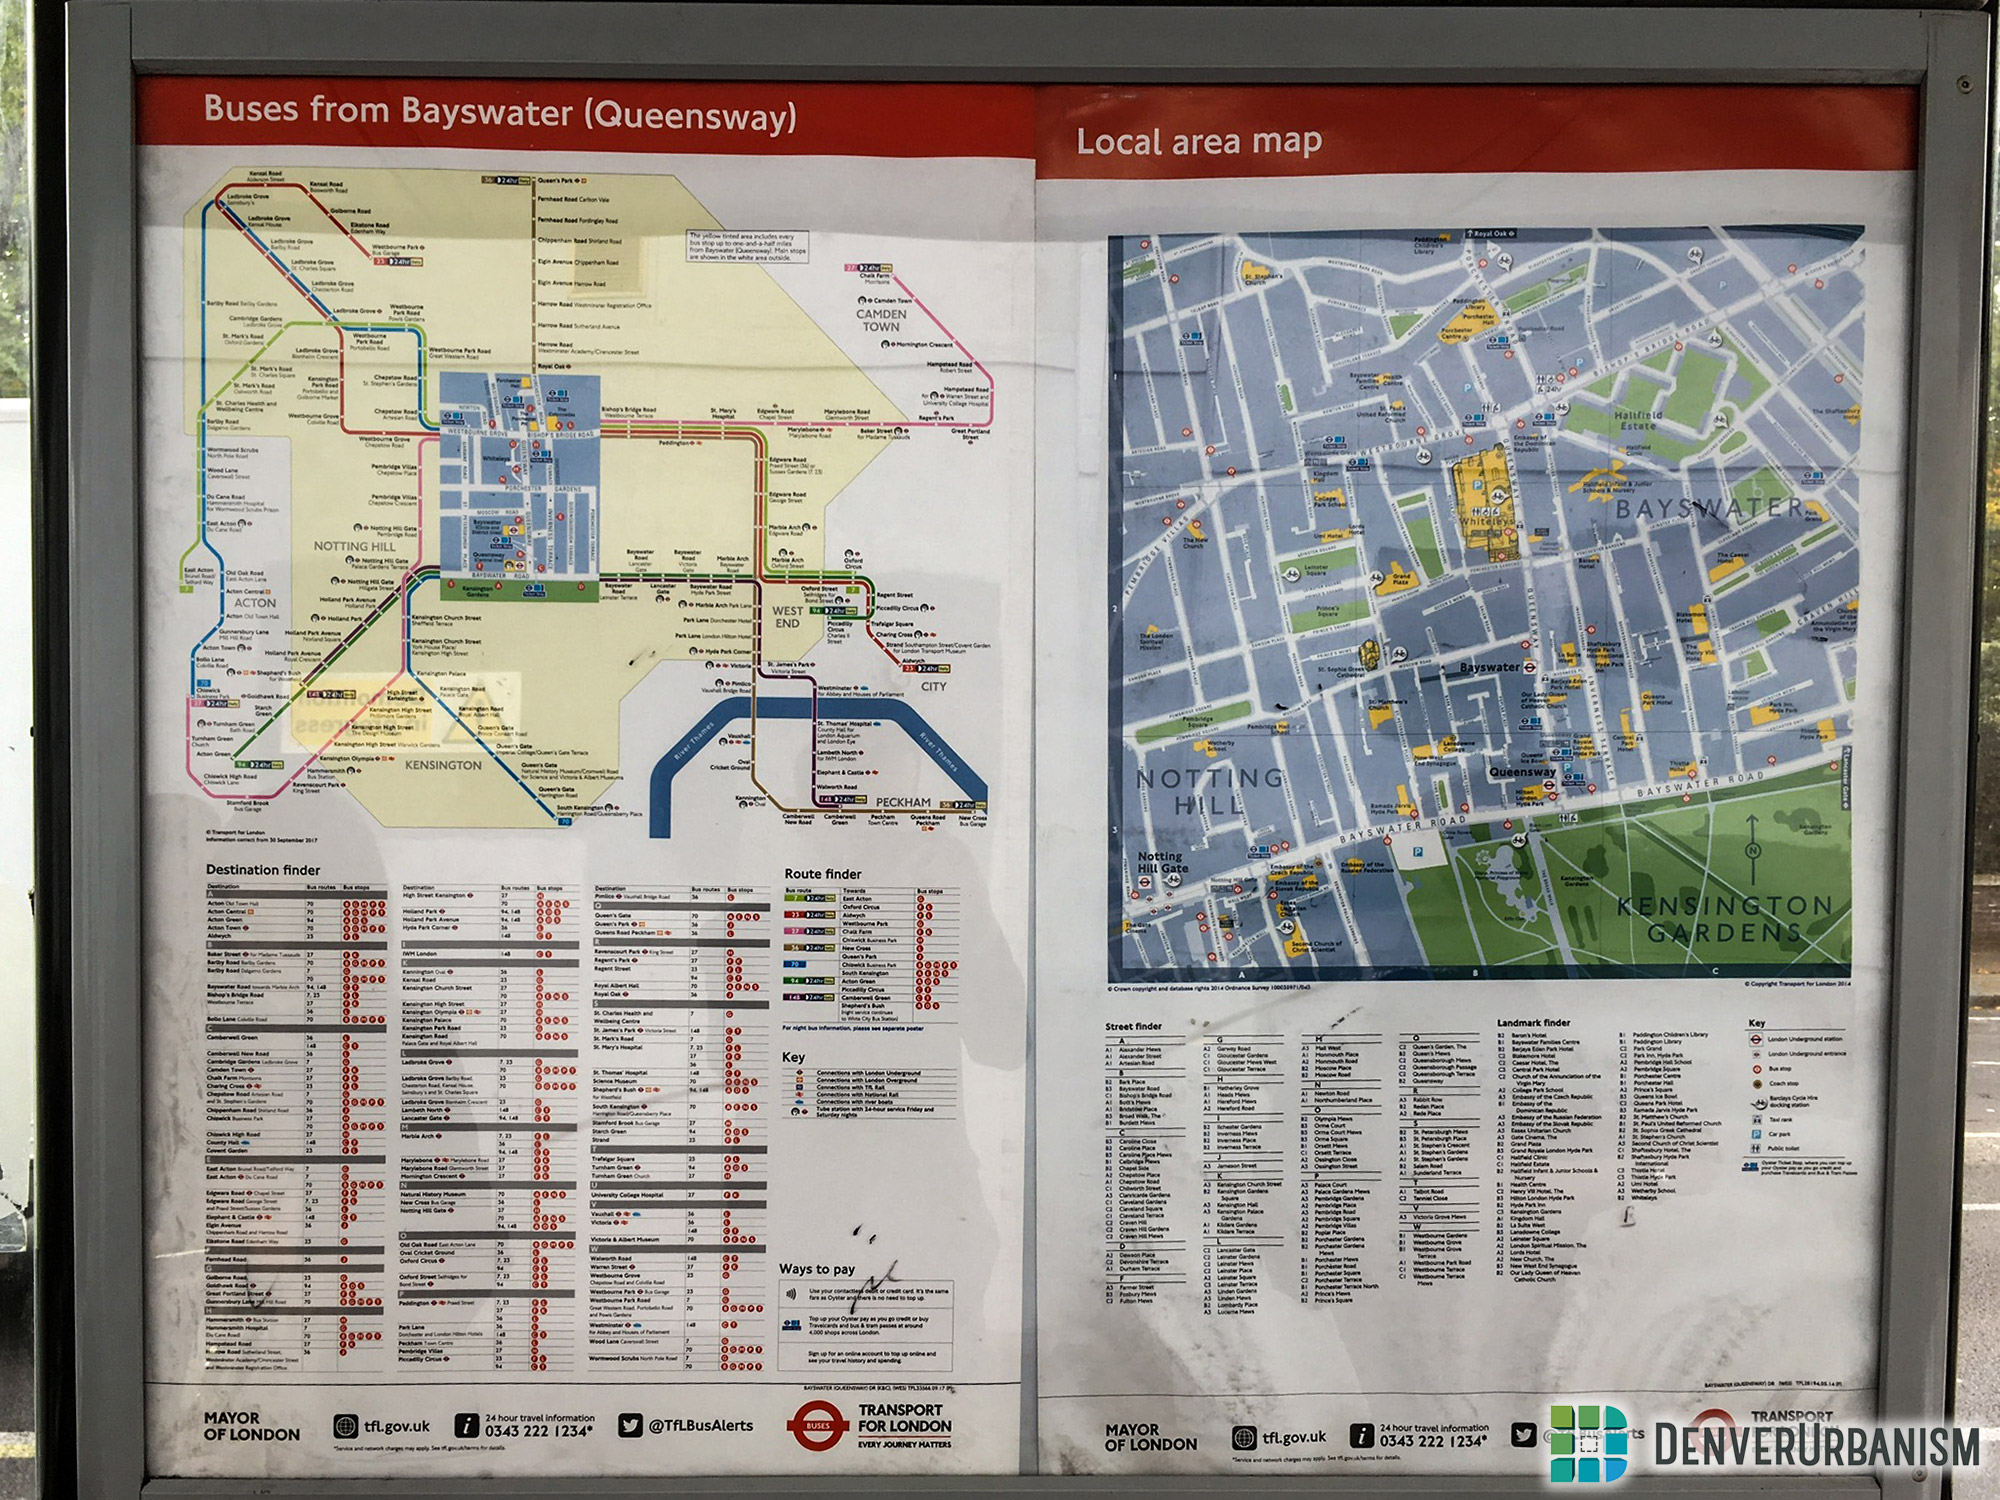 Transit maps and wayfinding signs for London metro system